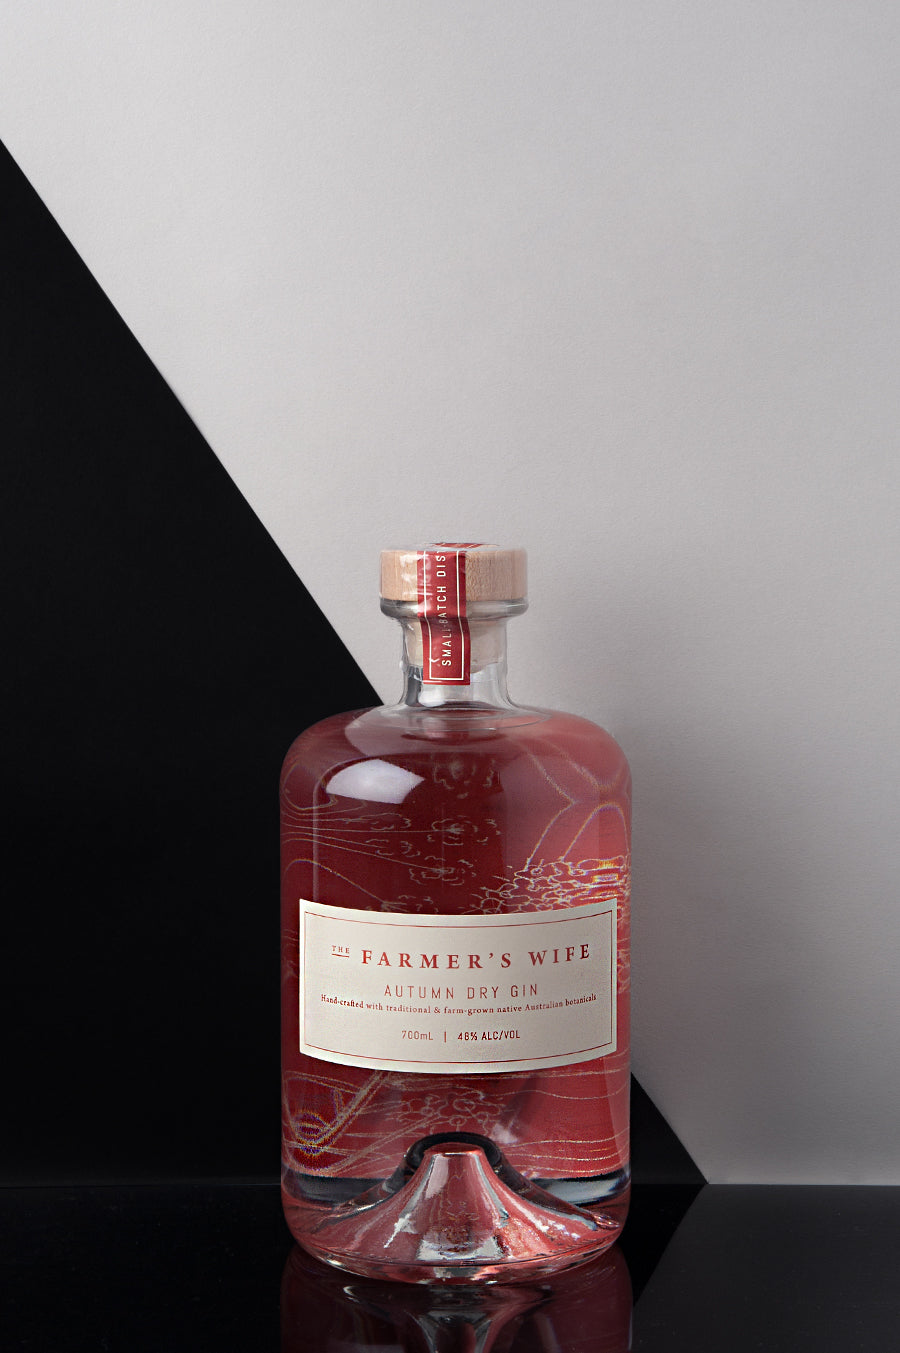 The Farmer's Wife Autumn Dry Gin